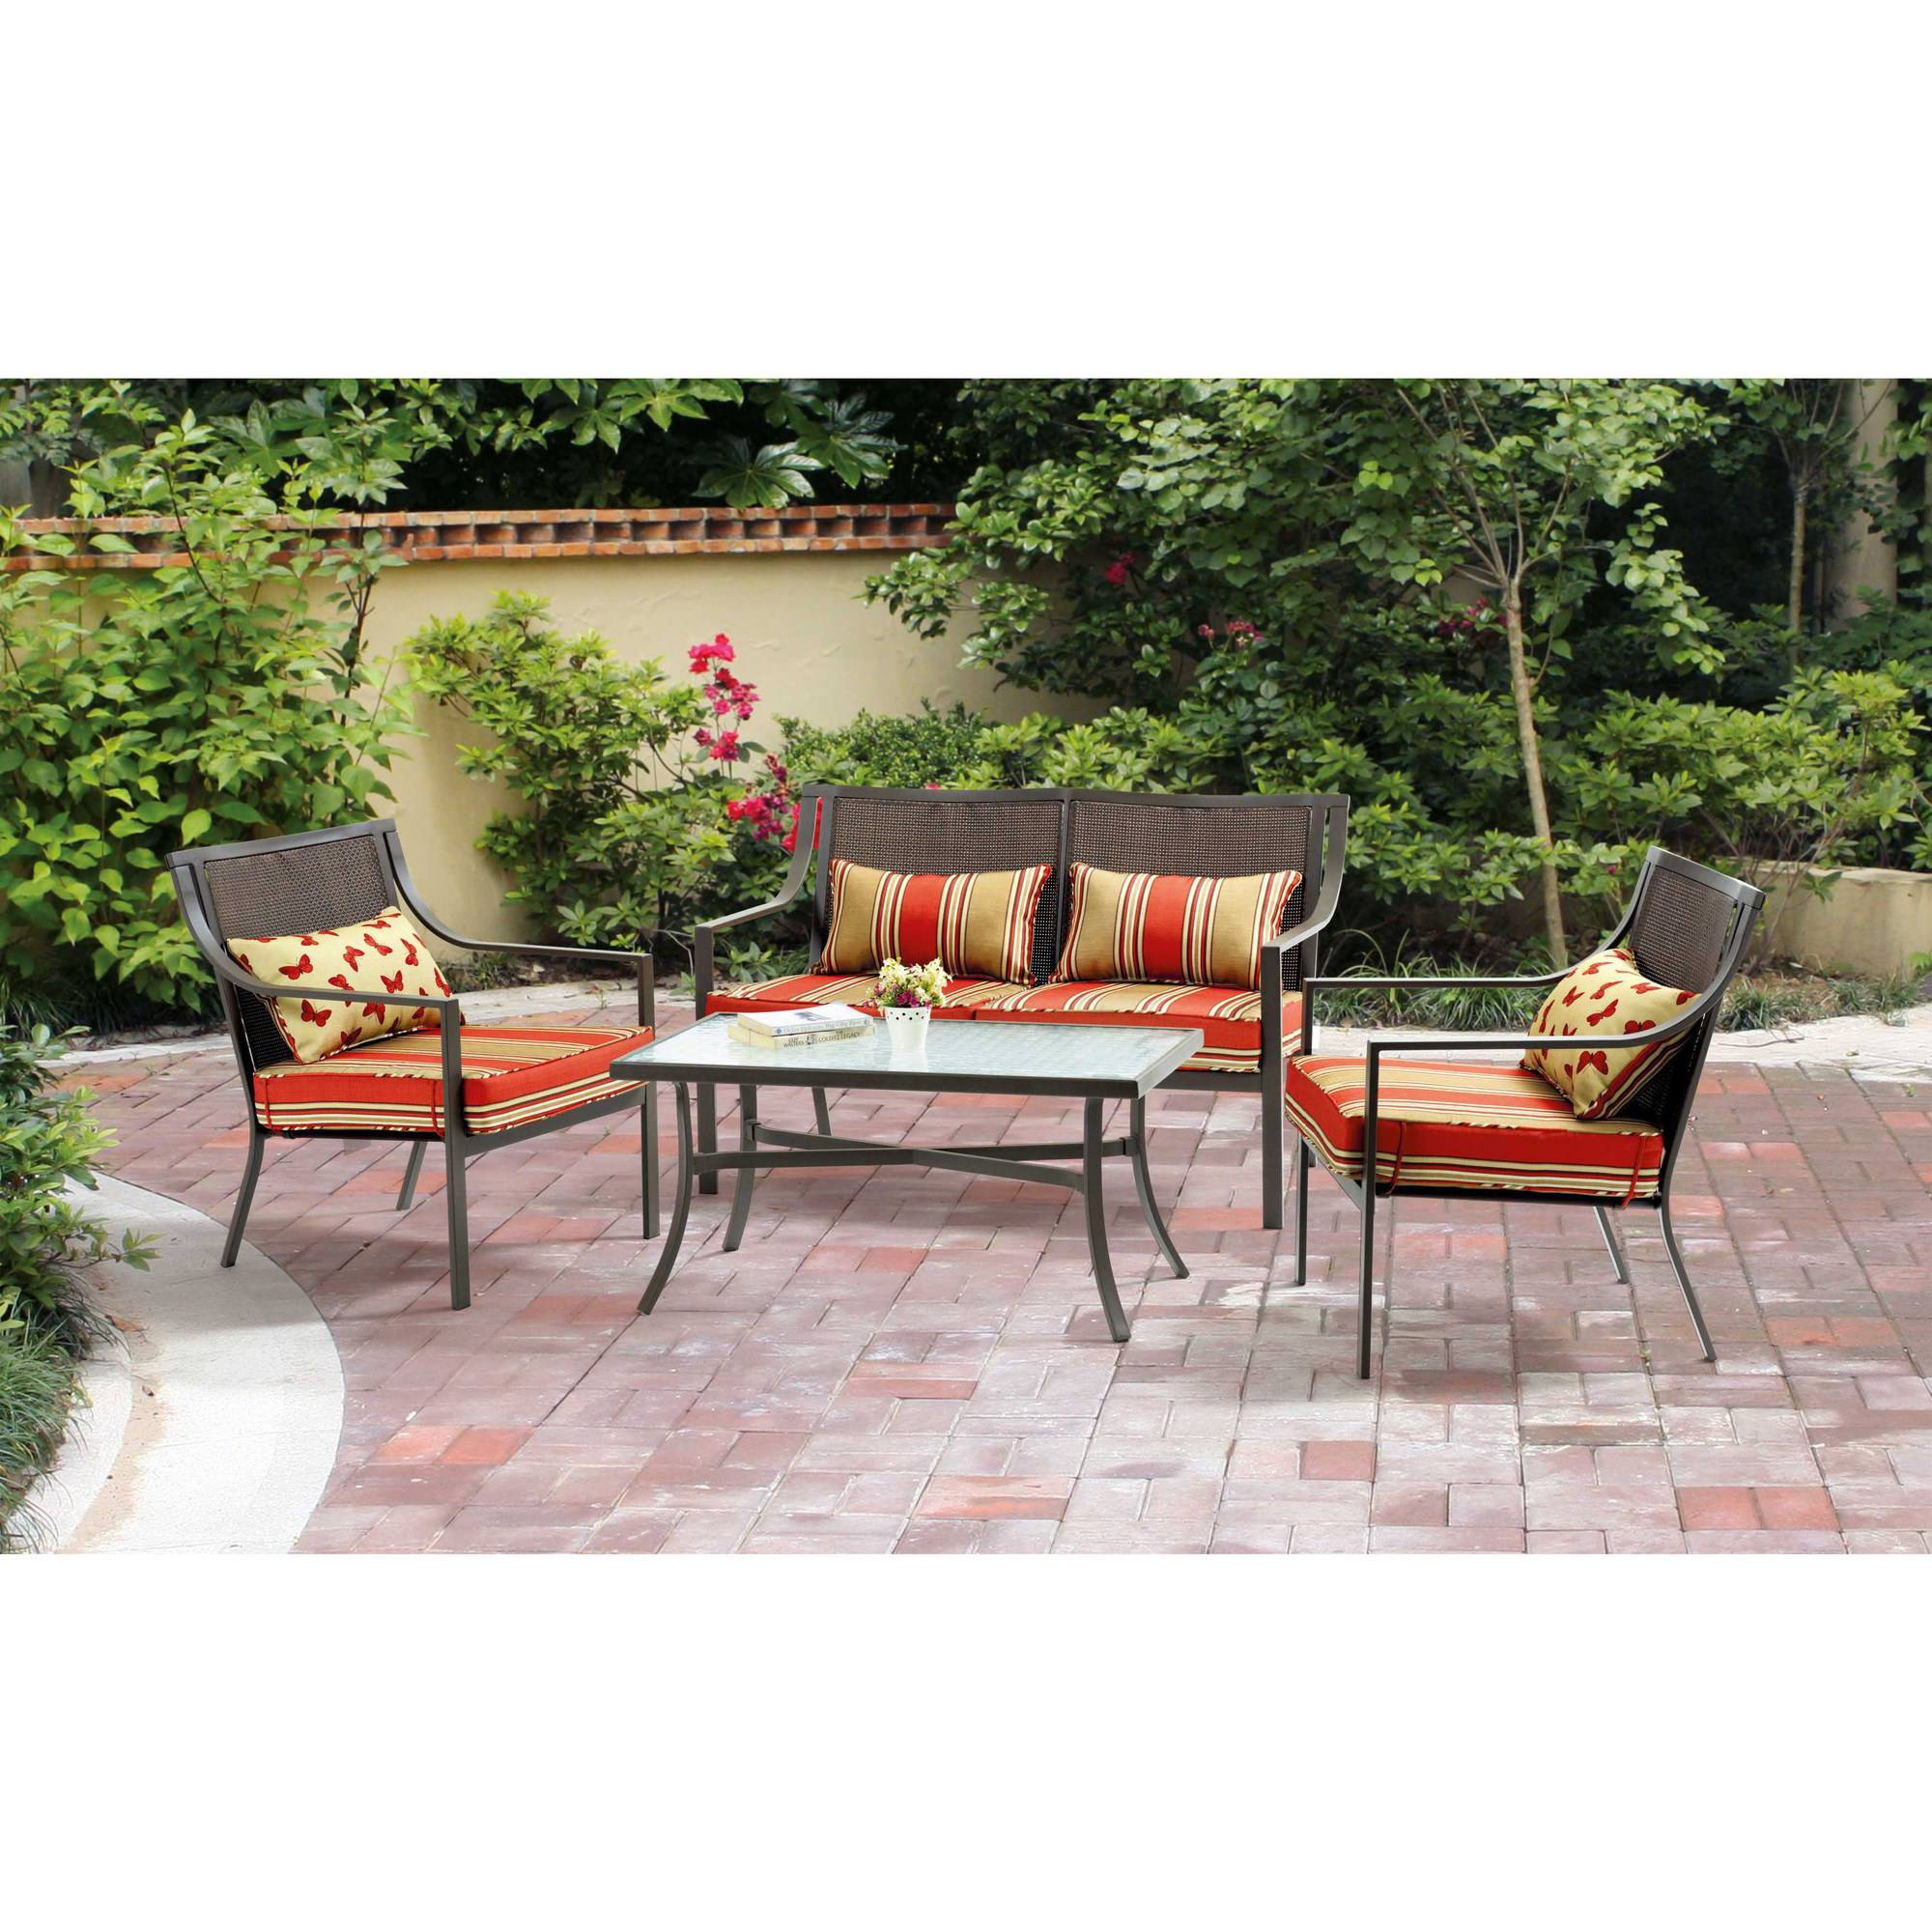 Mainstays Alexandra Square 4-Piece Patio Conversation Set, Red Stripe with Butterflies,... by Generic